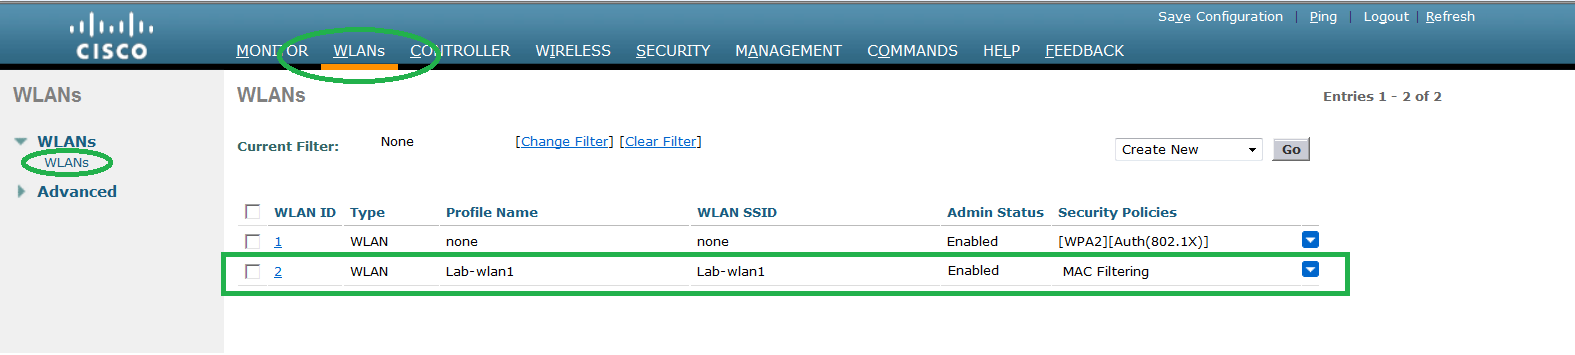 Networklearner: Configure SSID with Mac filtering Cisco WLC